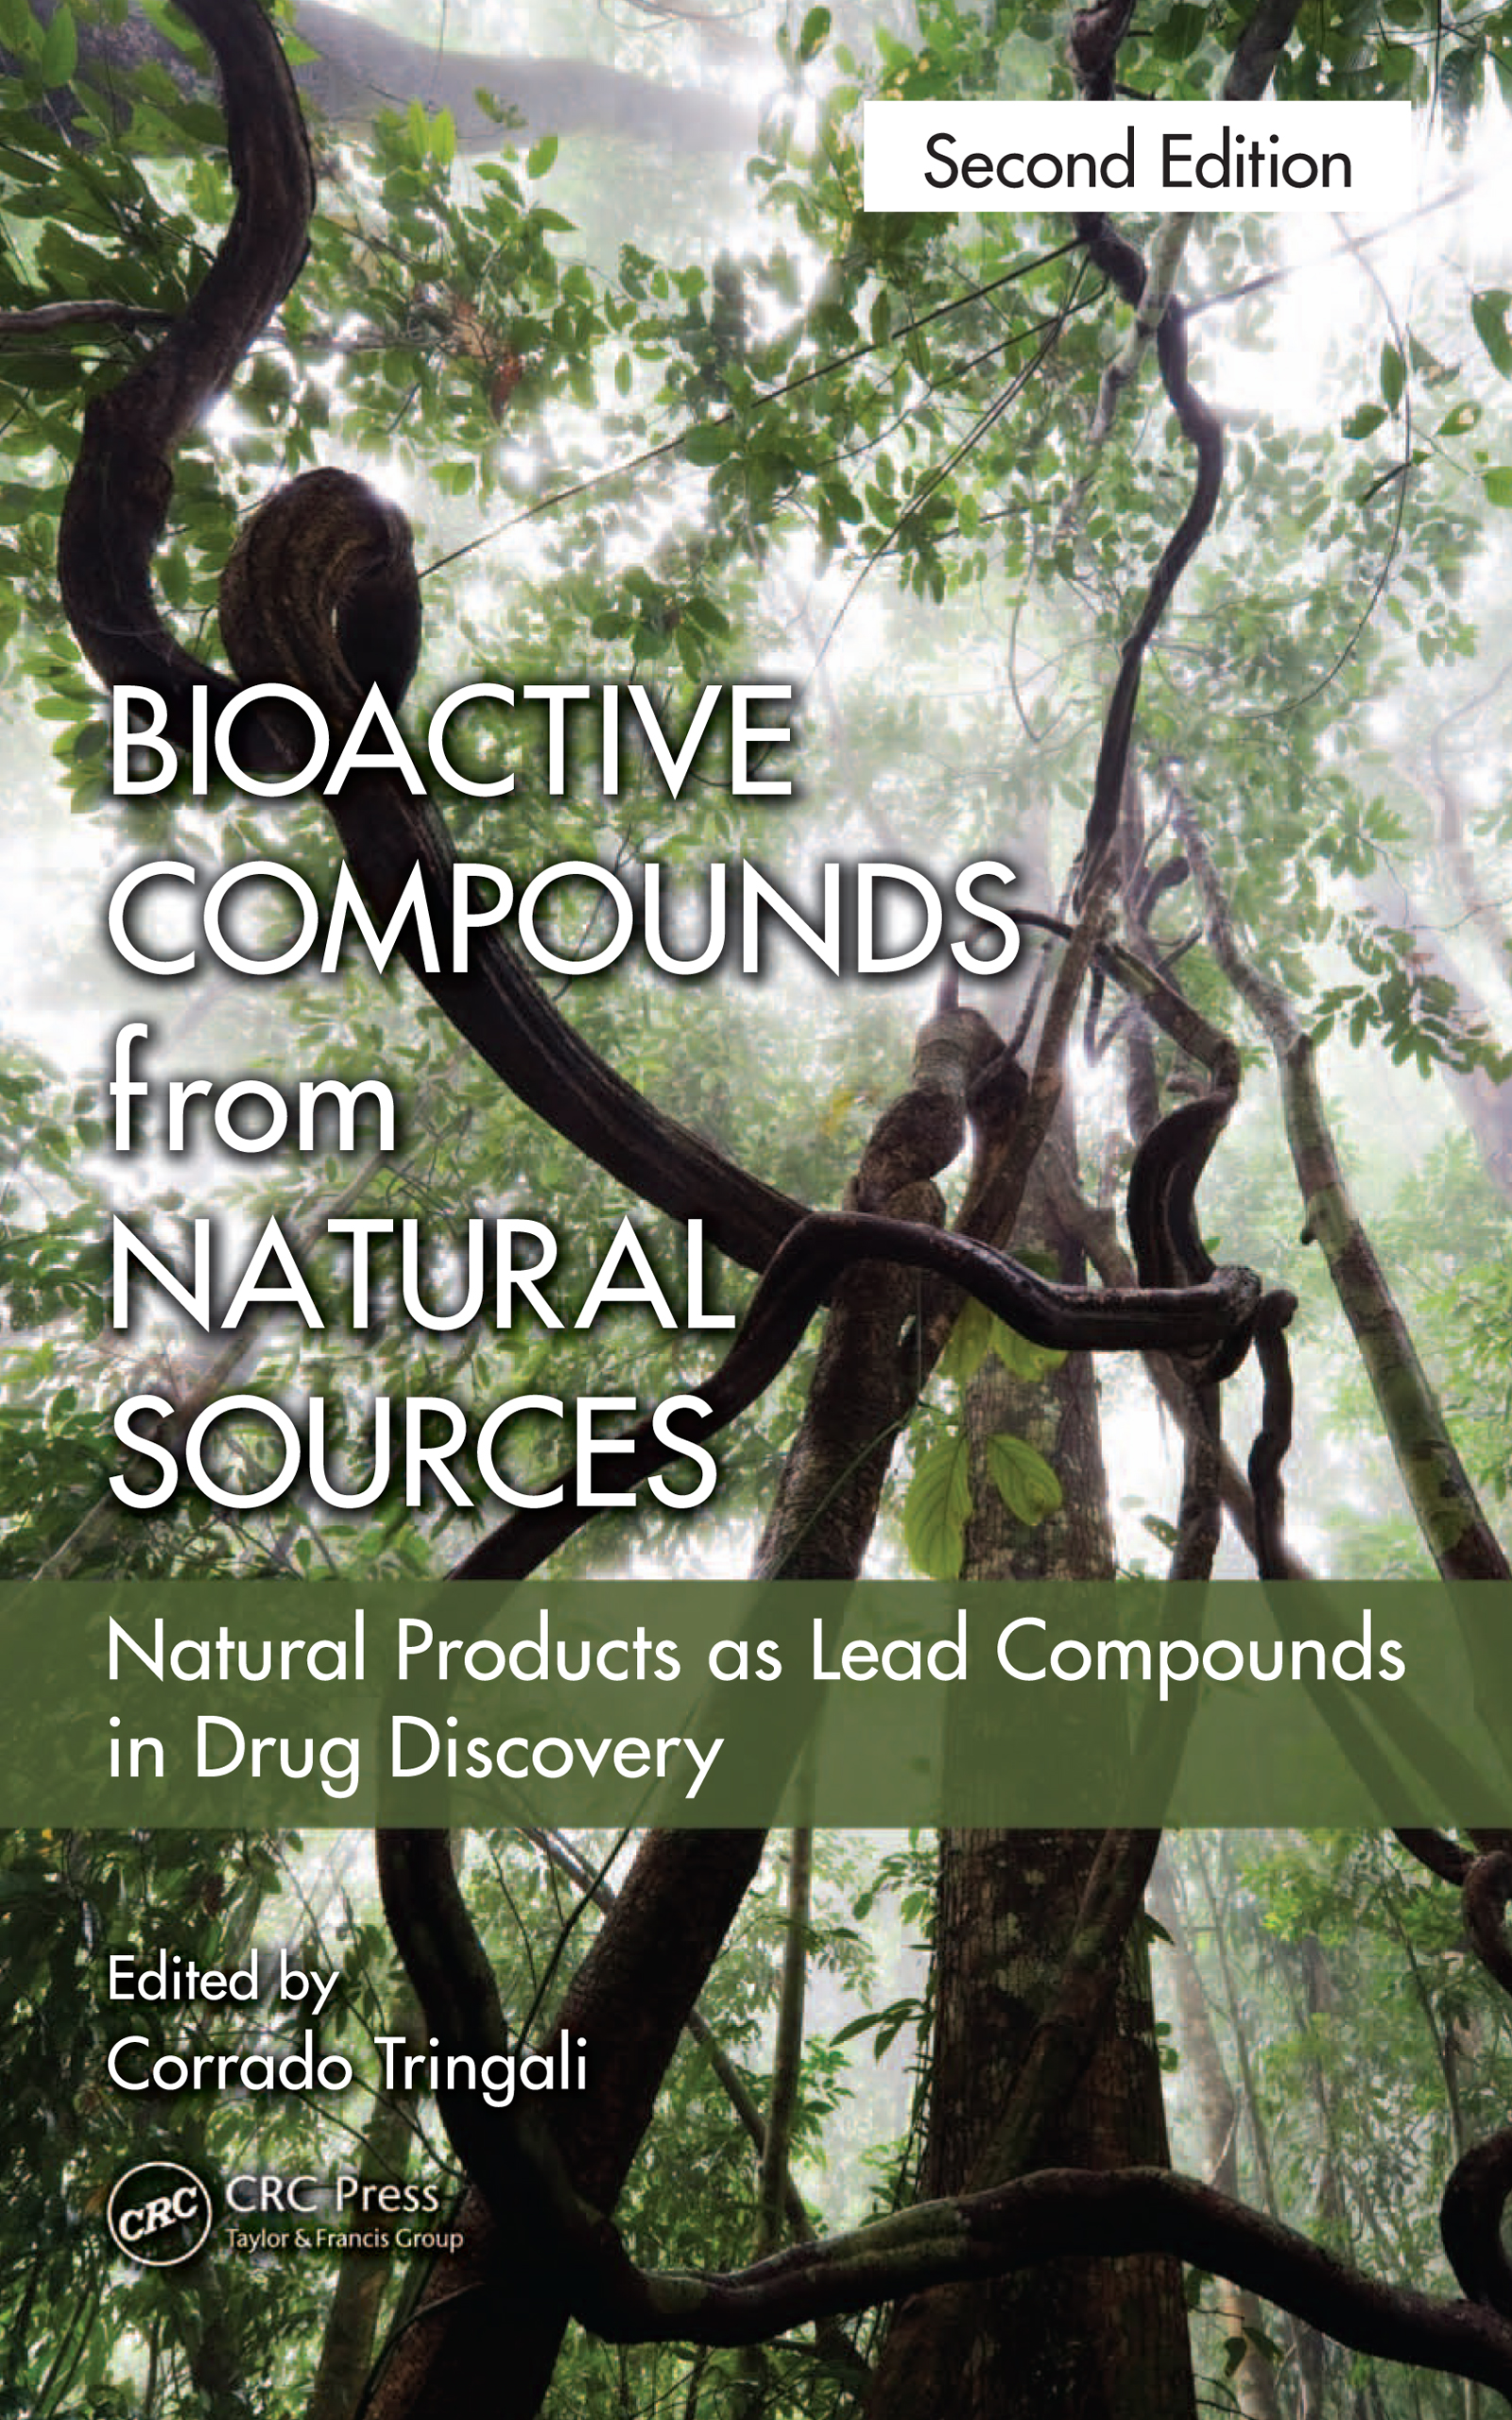 Bioactive Compounds from Natural Sources